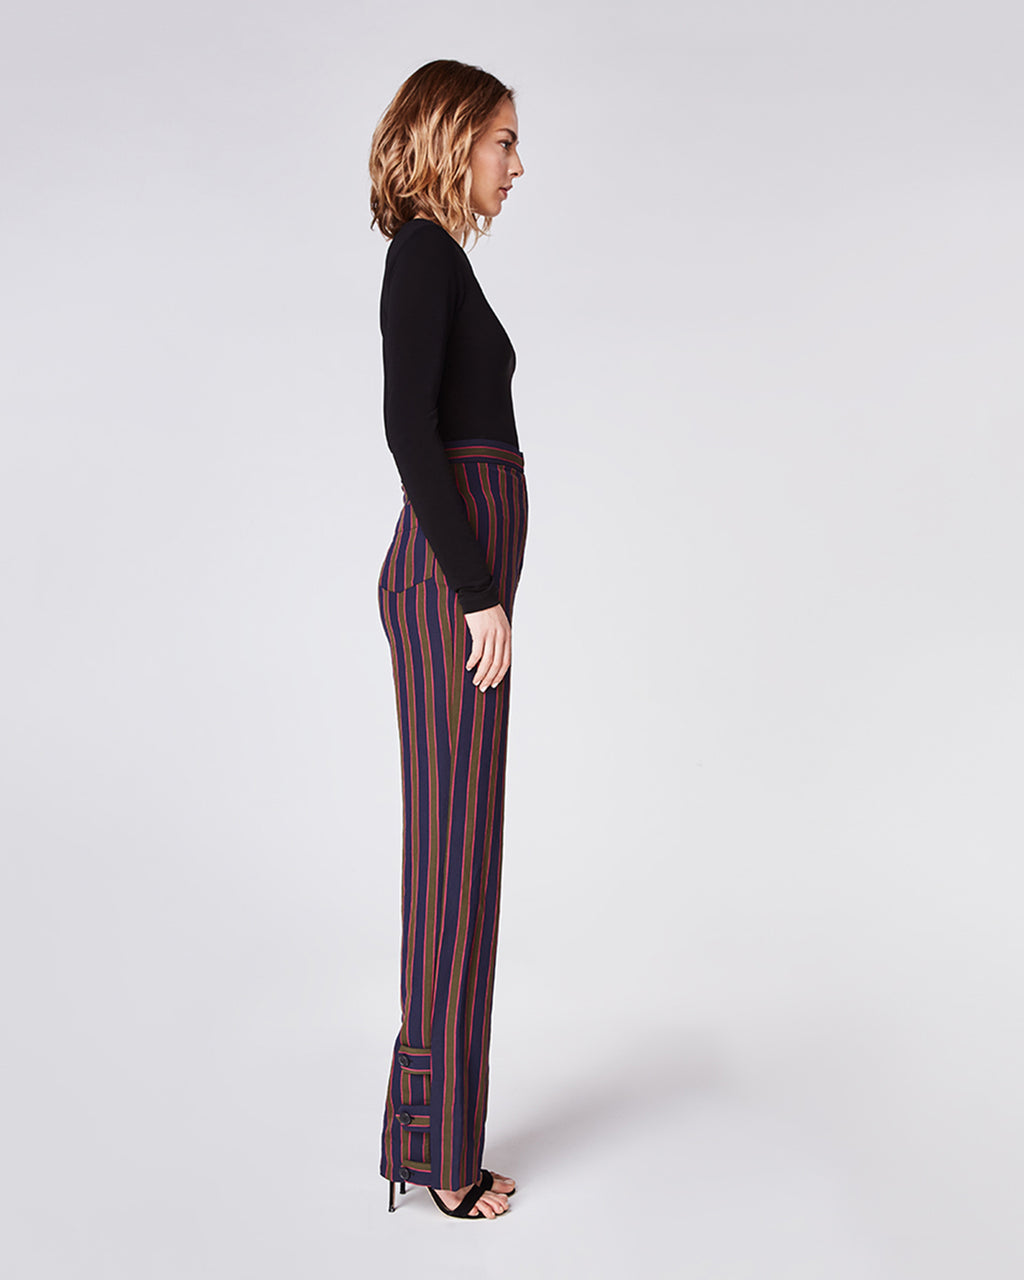 BH10348 - EARHART STRIPE HIGH WAISTED PANT - bottoms - pants - In a high waisted silhouette, these straight leg pants feature a triple-button cuff. Finished with a zipper for closure and fully lined.�